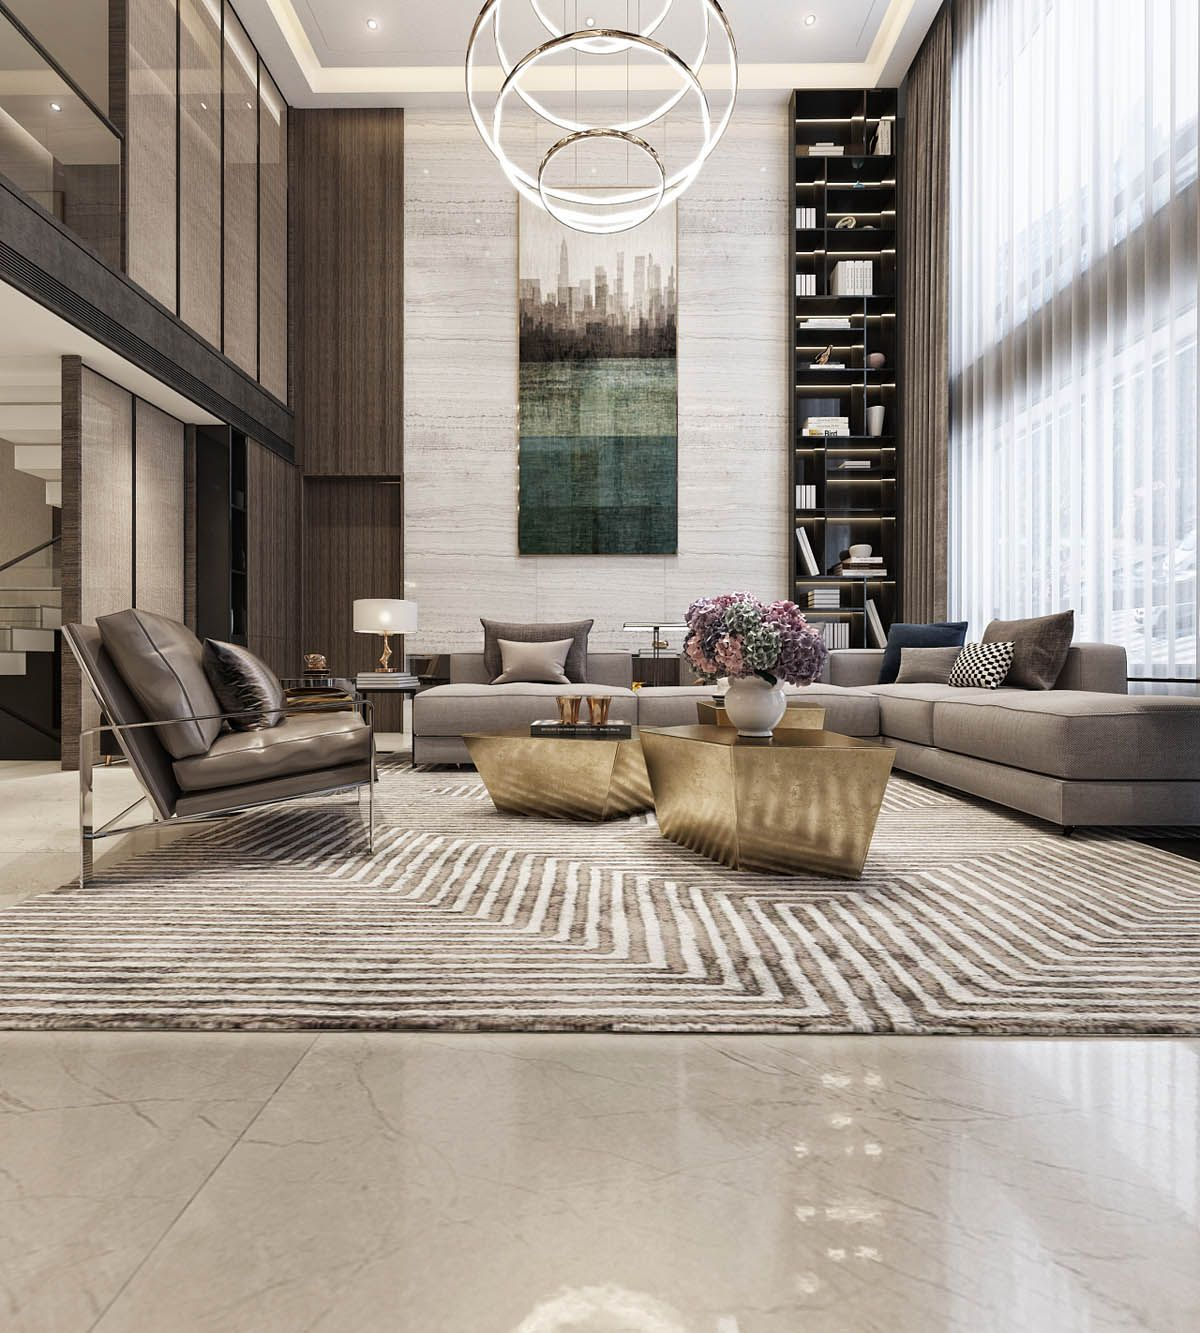 Modern Asian Luxury Interior Design Luxury Interior Design Living Room Luxury Living Room Interior Design Living Room